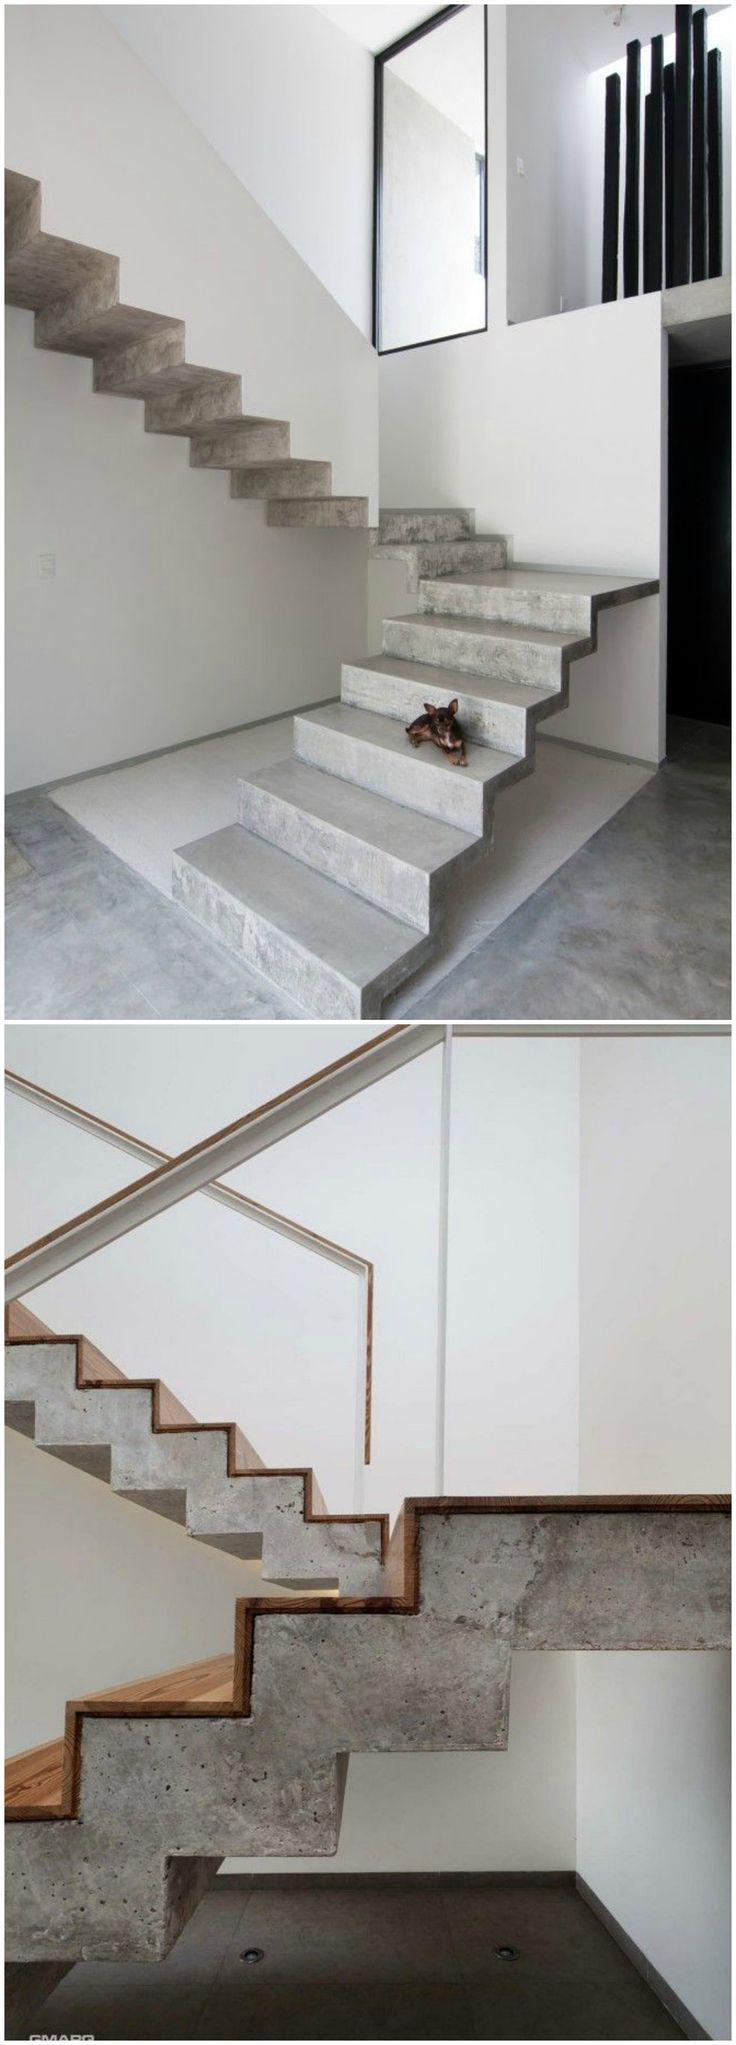 17 mejores ideas sobre dise o de escalera en pinterest for Escaleras de cemento para interiores